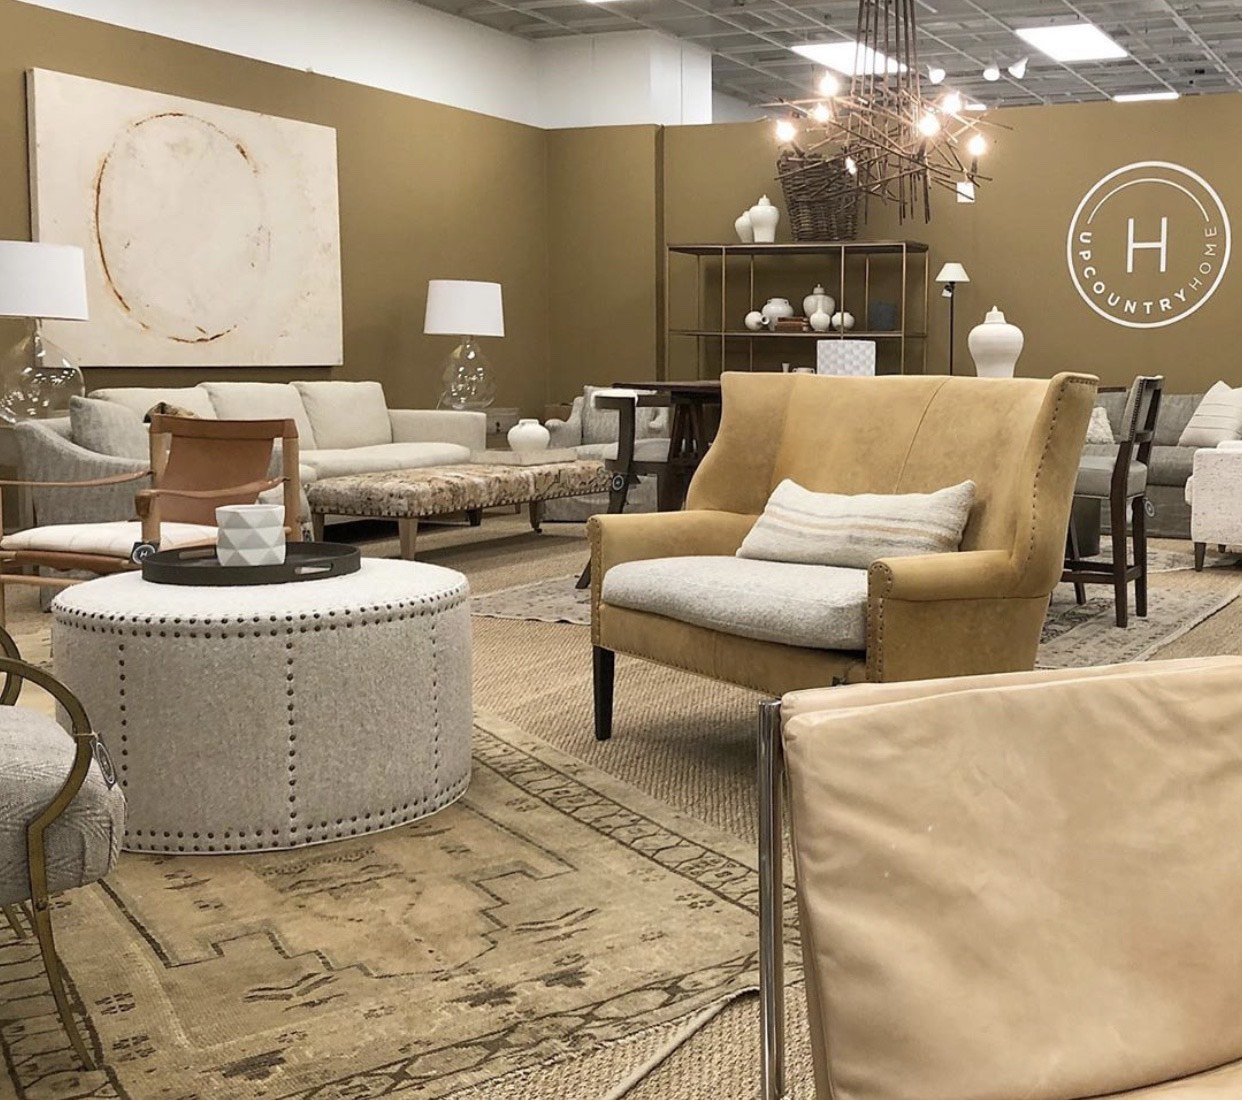 Hd Home At Americasmart Upcountry Home